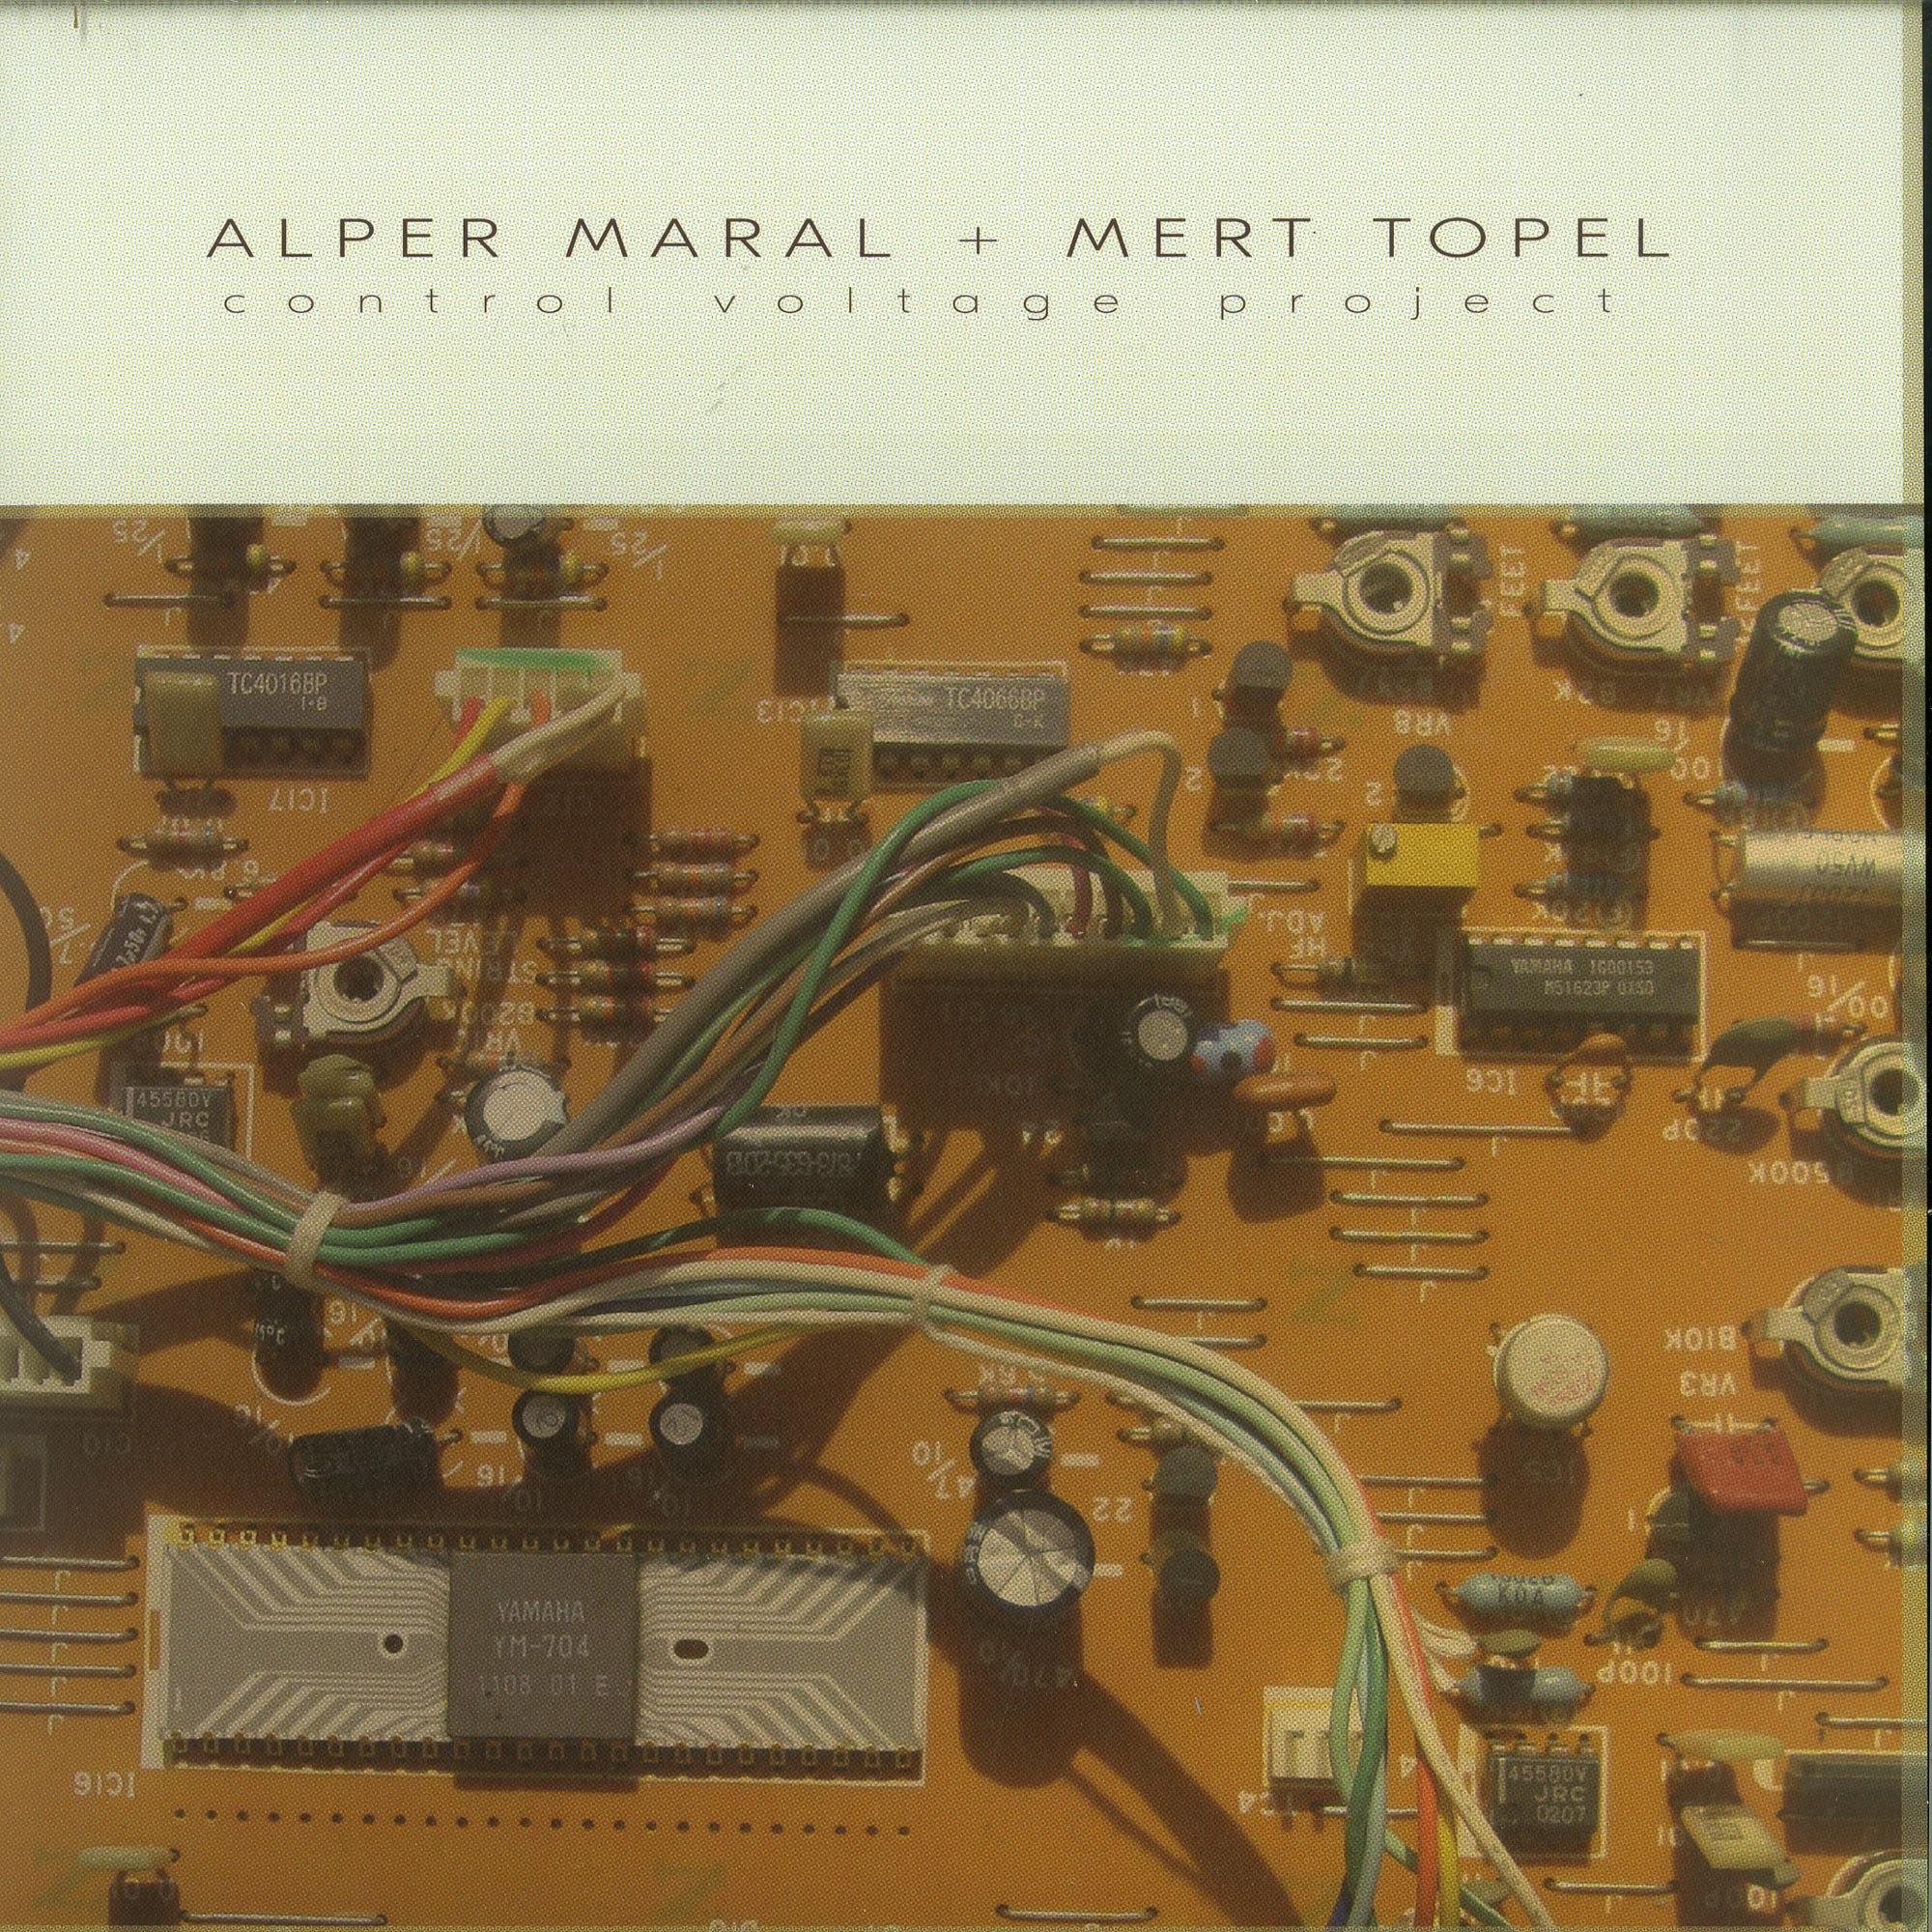 Alper Maral & Mert Topel - CONTROL VOLTAGE PROJECT